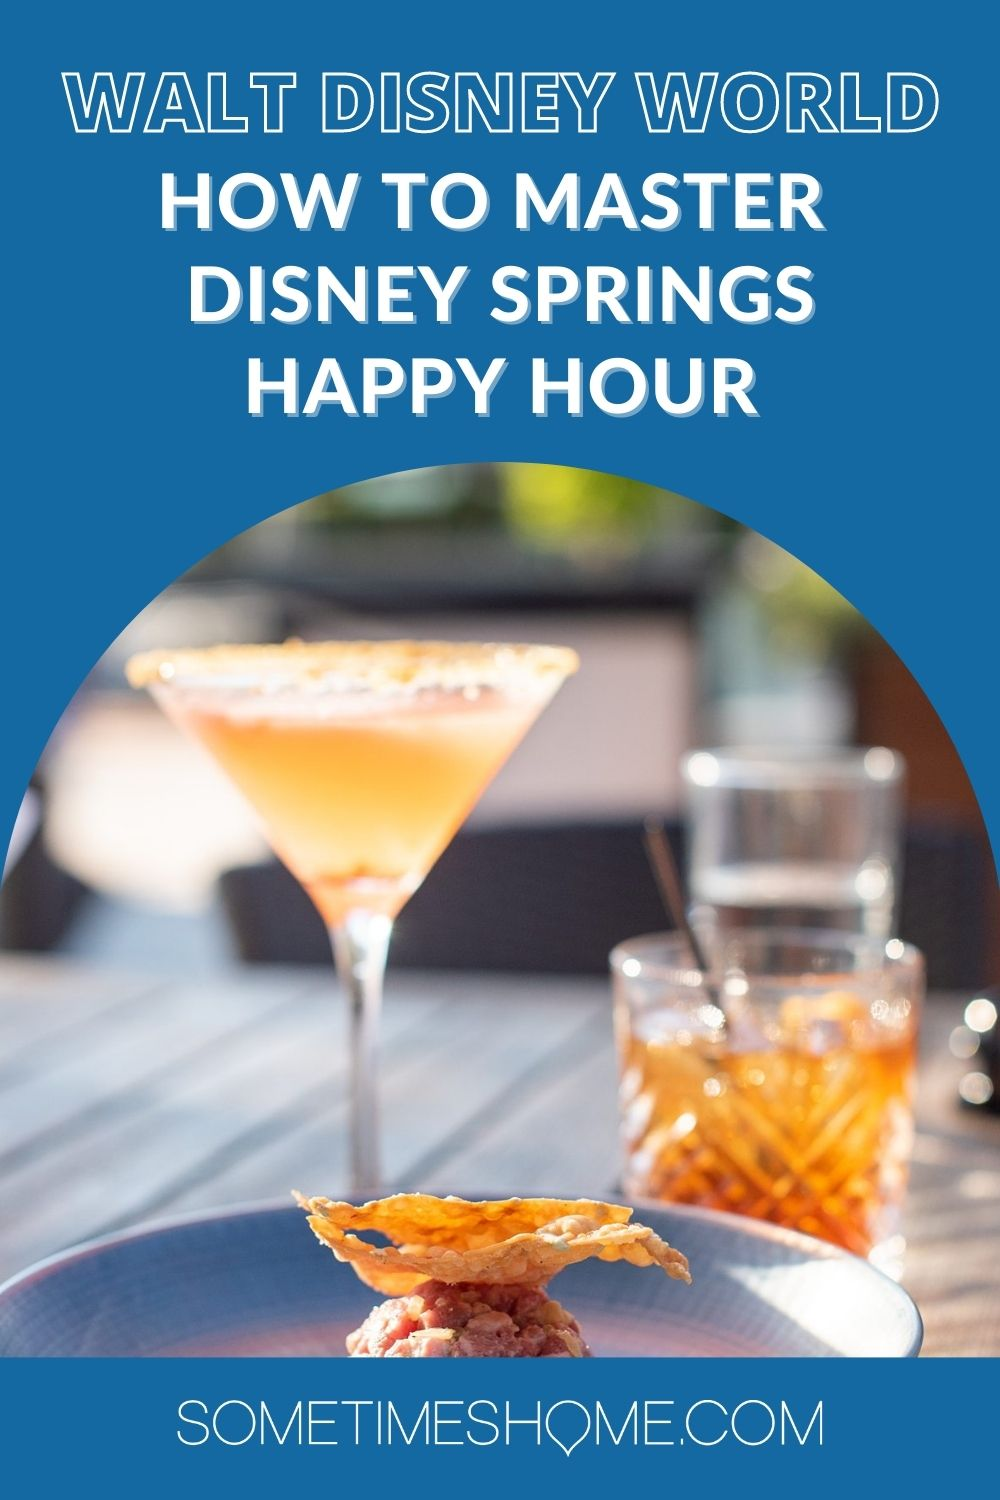 Walt Disney World How to Master Disney Springs Happy Hour with a picture of drinks.